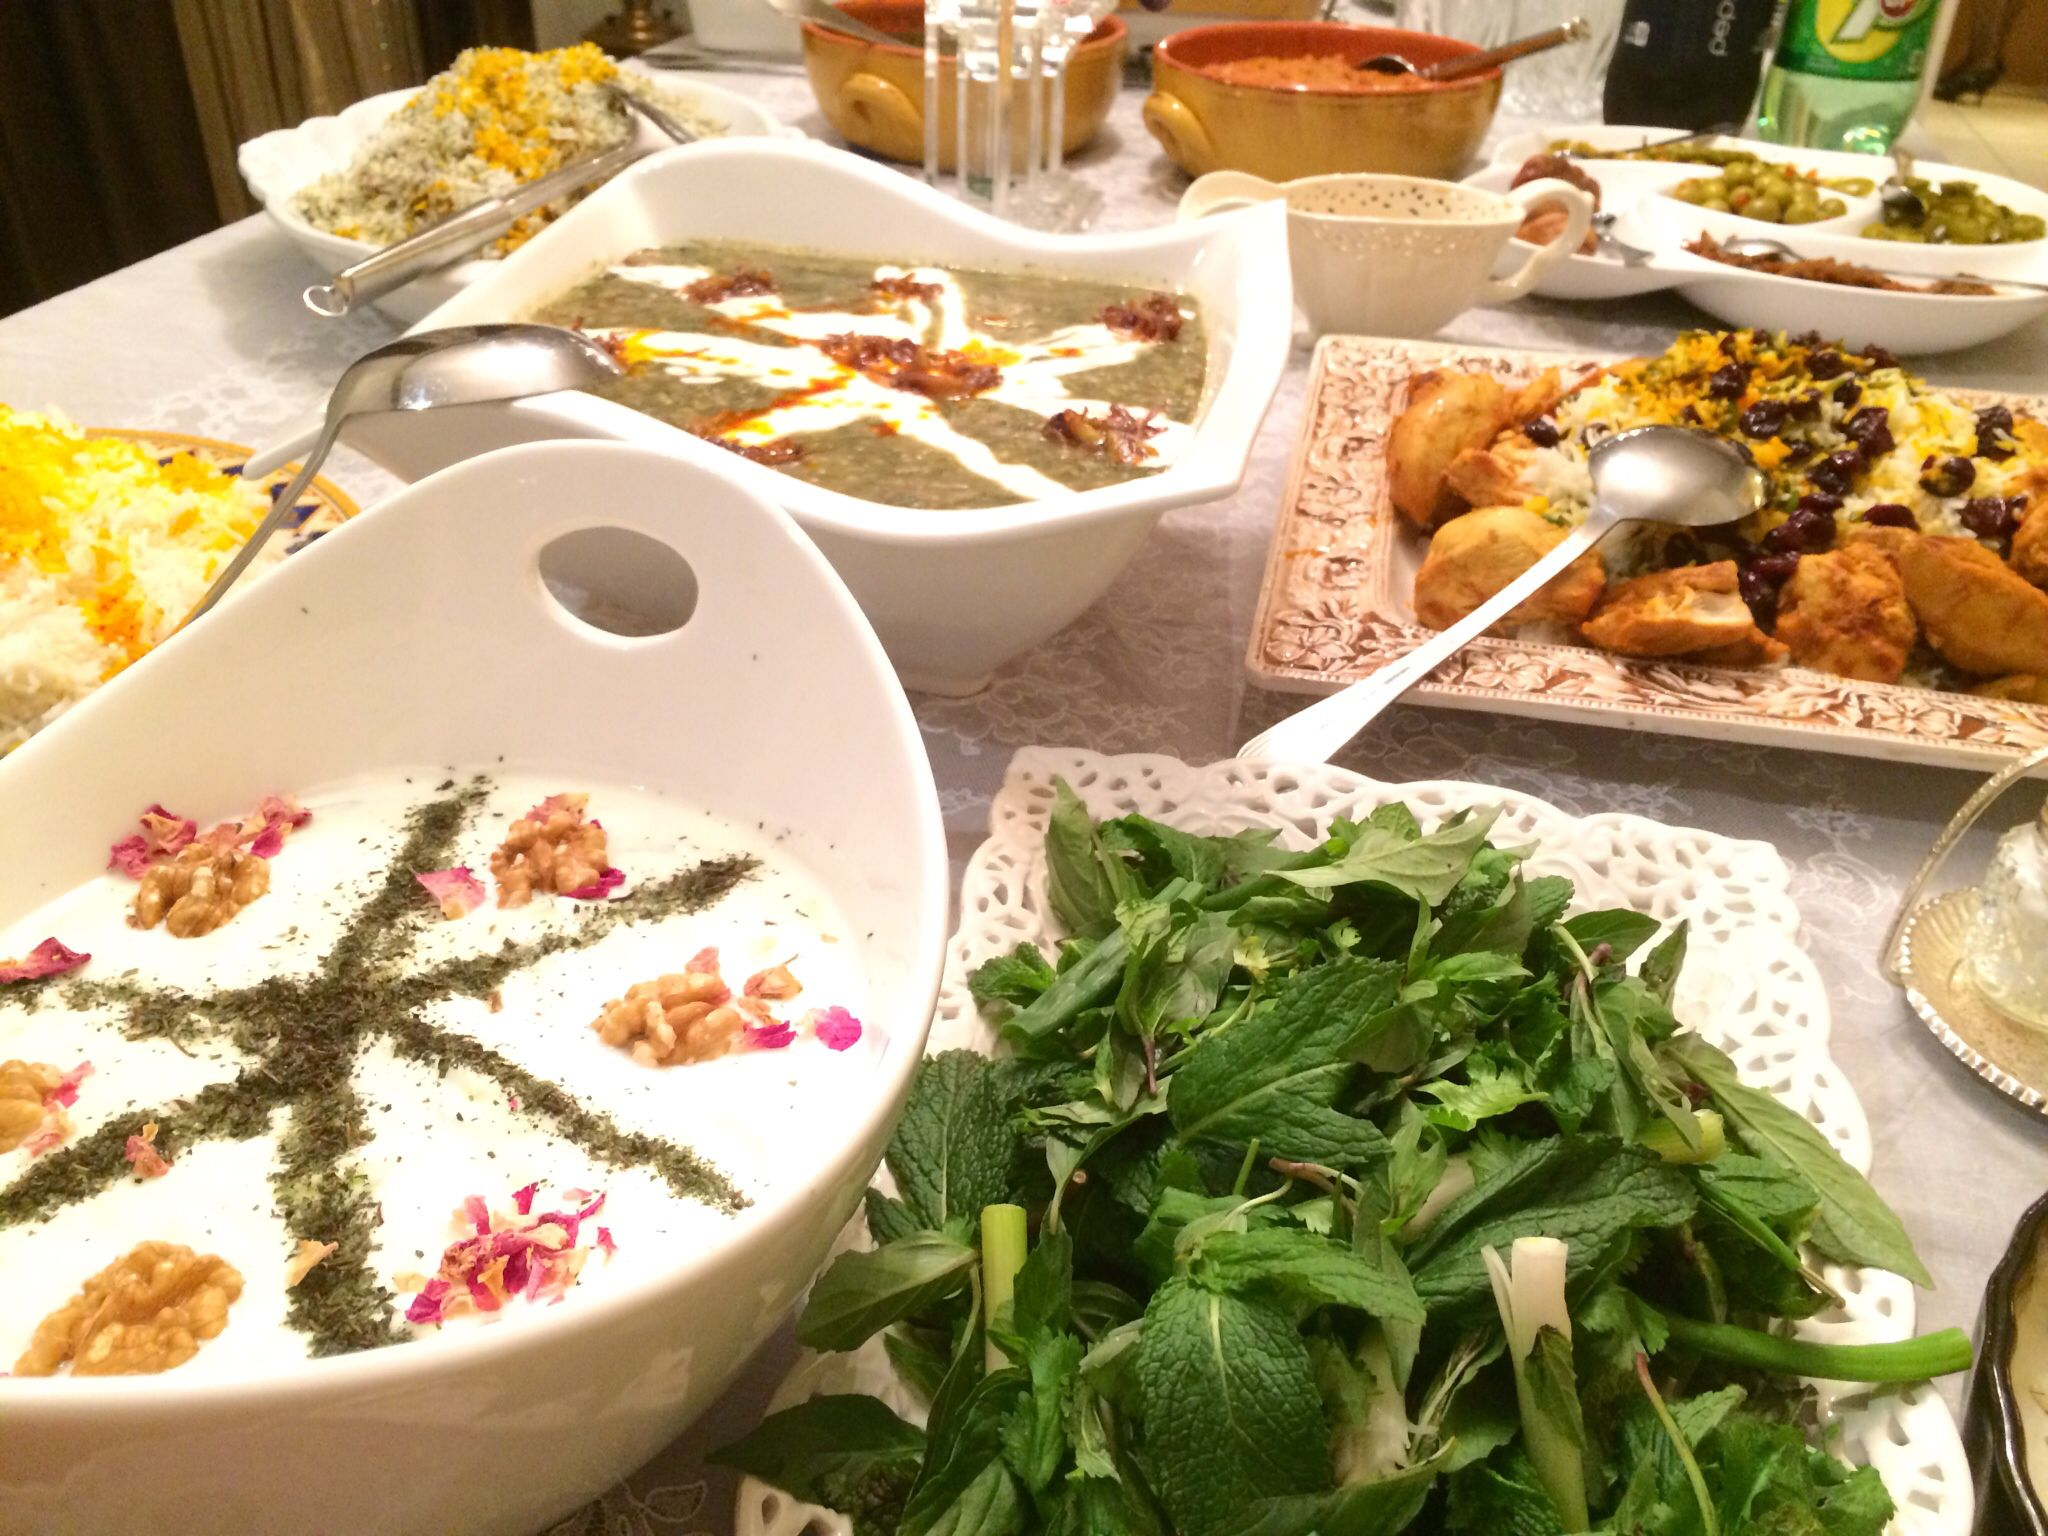 Dinner table with food - Persian Dinner Table